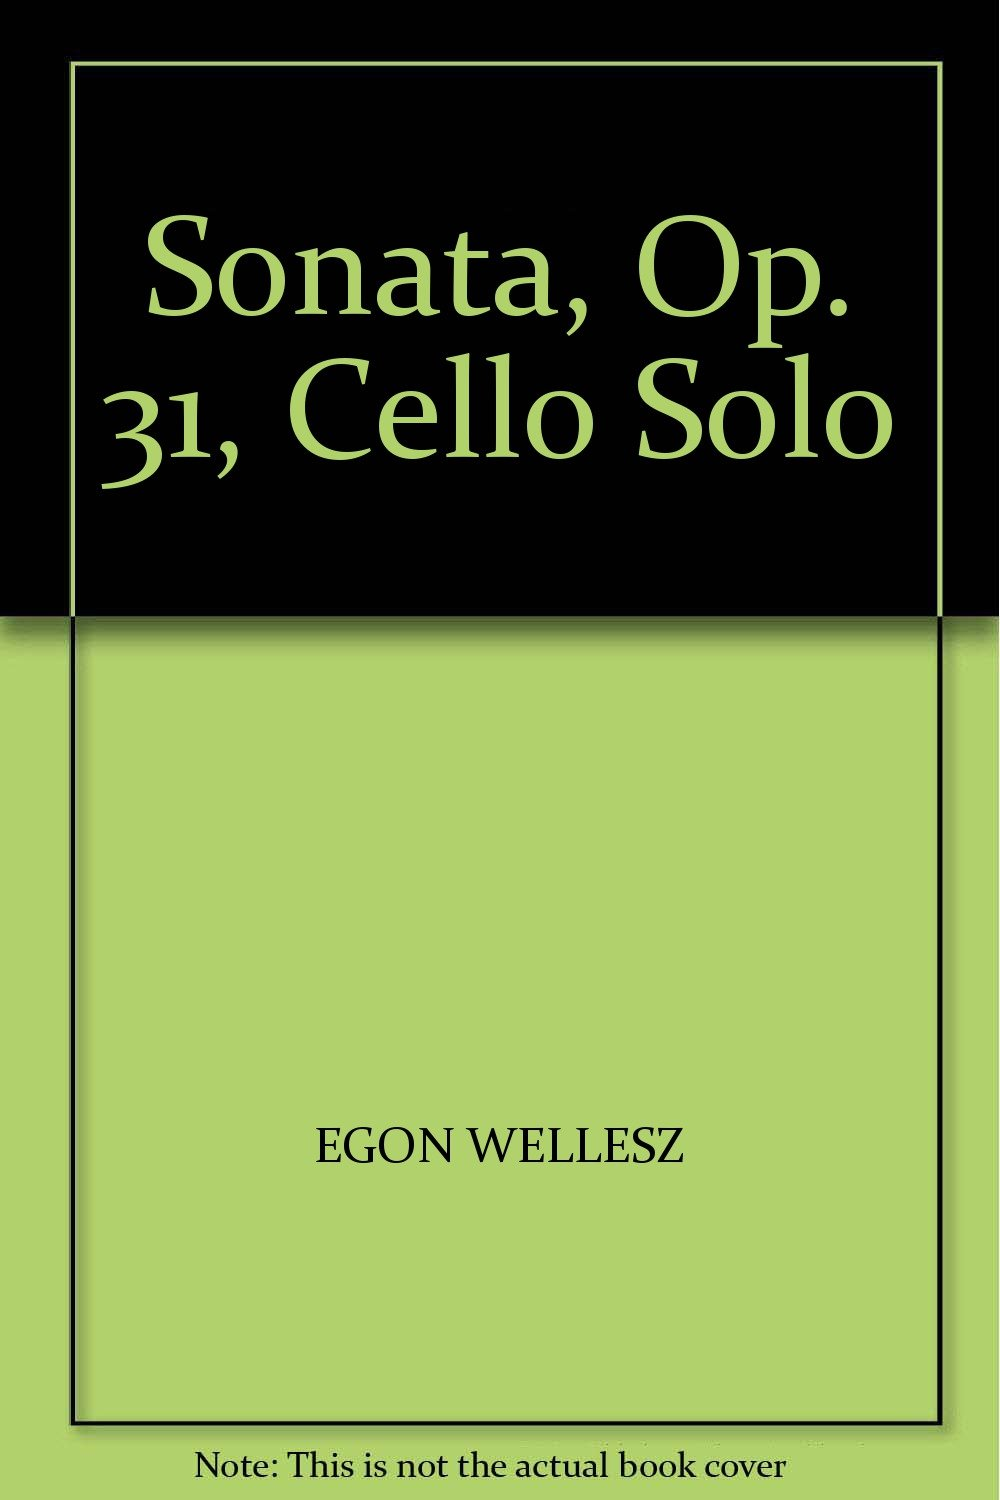 Read Online SONATA, OP. 31, CELLO SOLO ebook